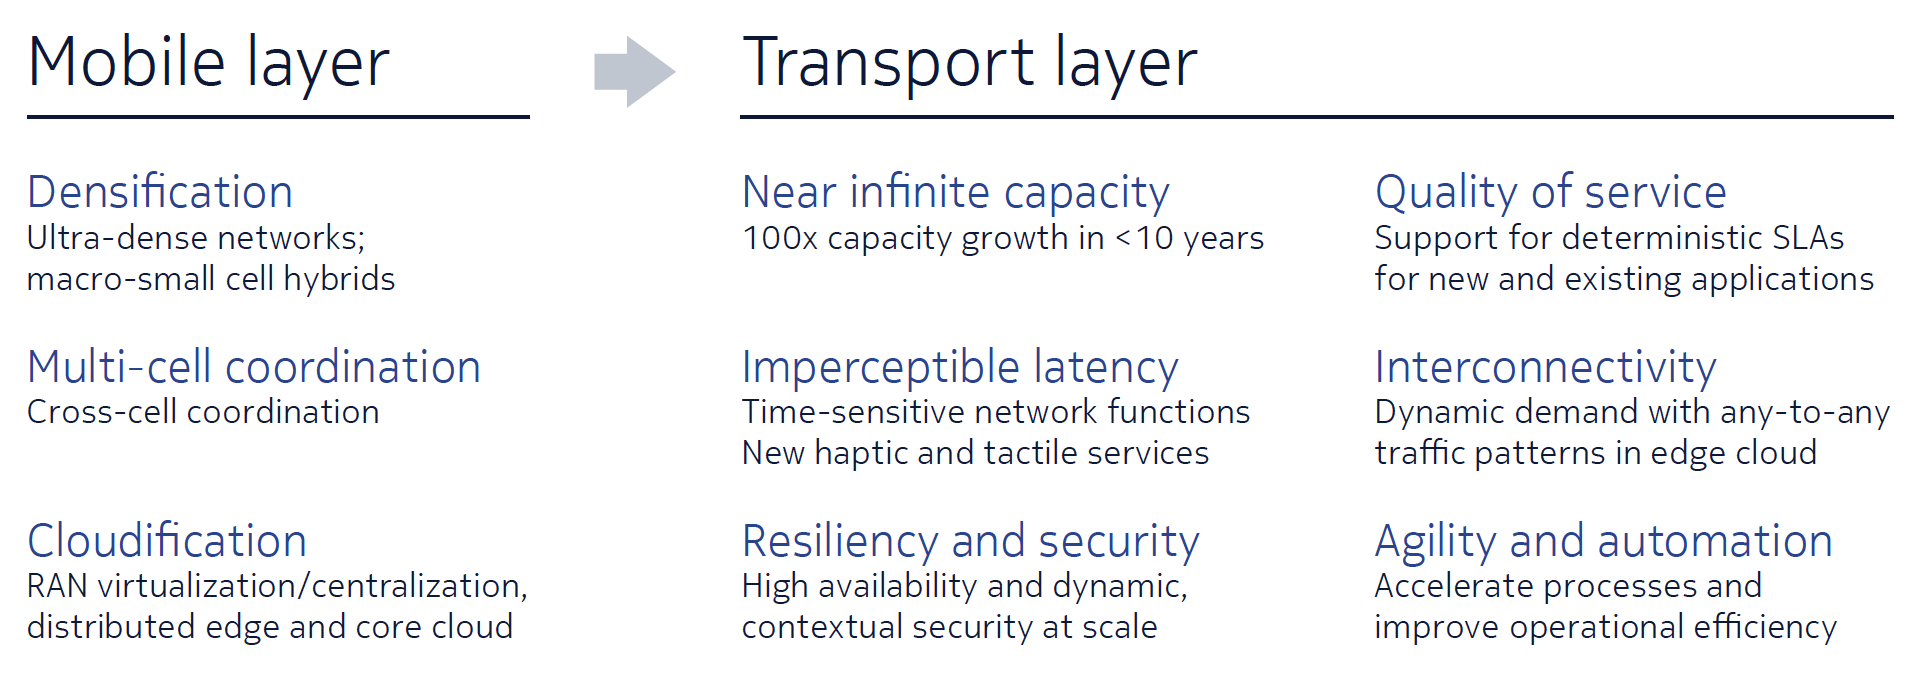 Figure 2. 5G drives a tectonic shift in mobile transport requirements